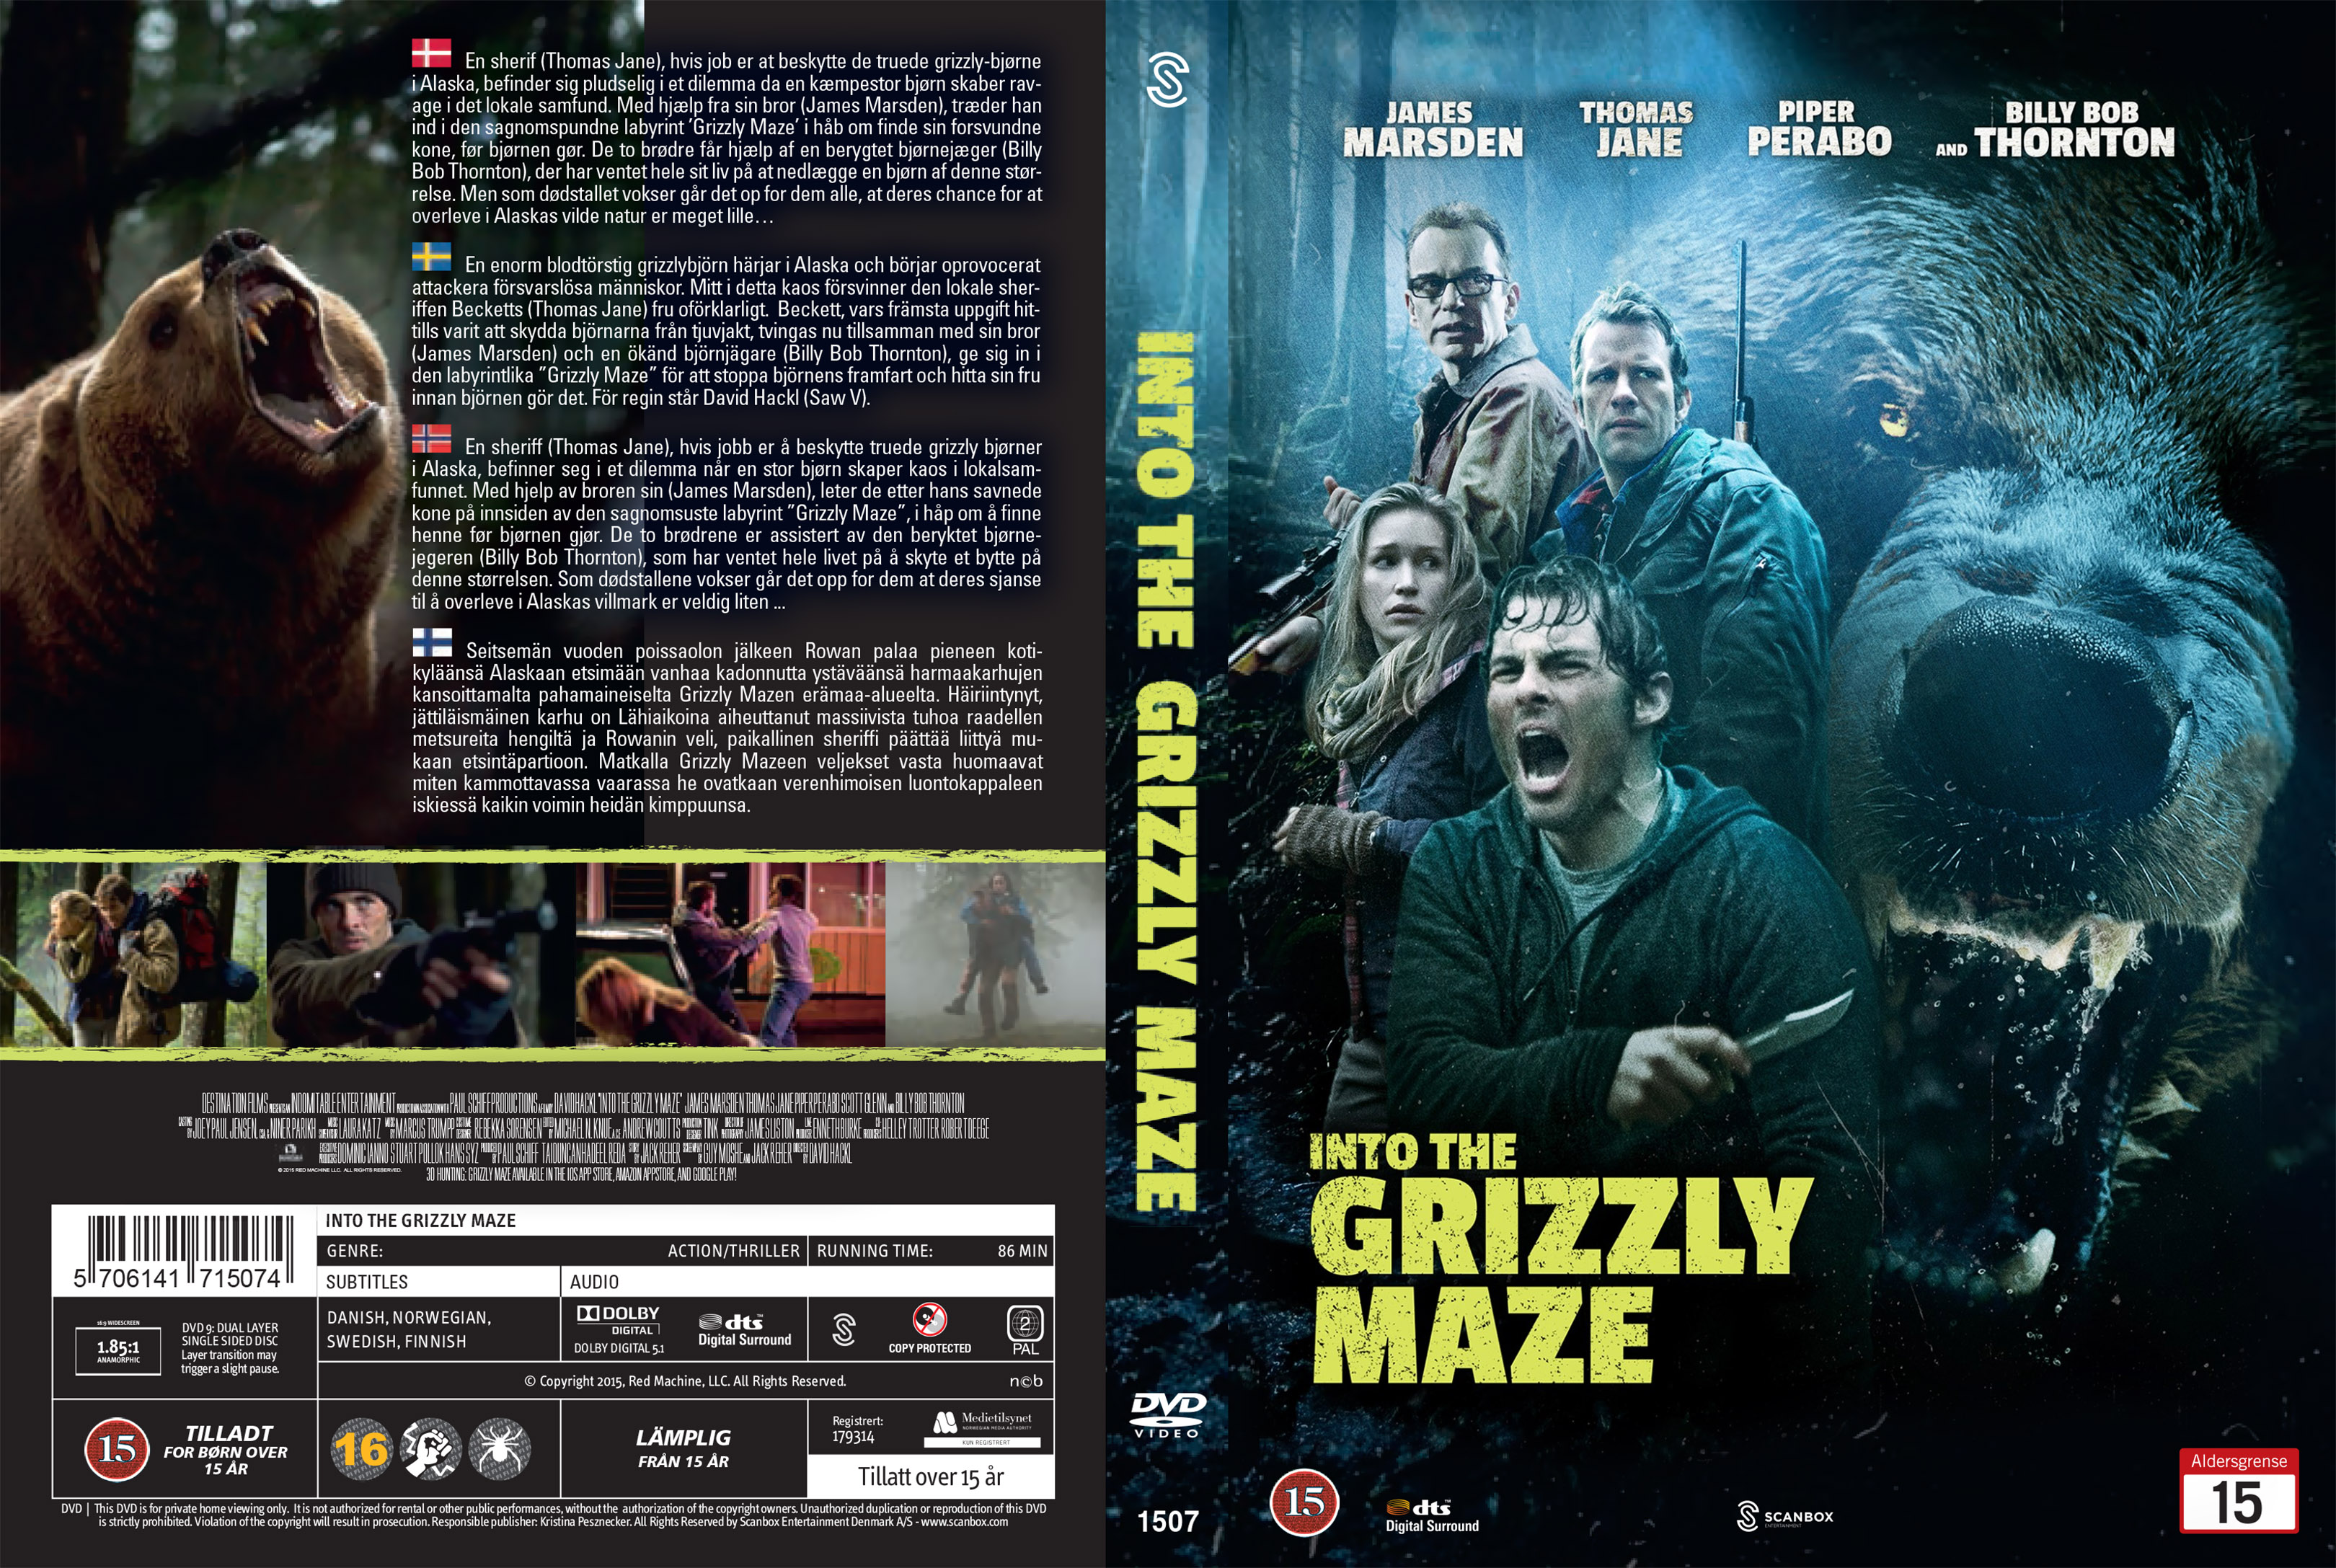 Into The Grizzly Maze Backgrounds, Compatible - PC, Mobile, Gadgets| 3240x2175 px